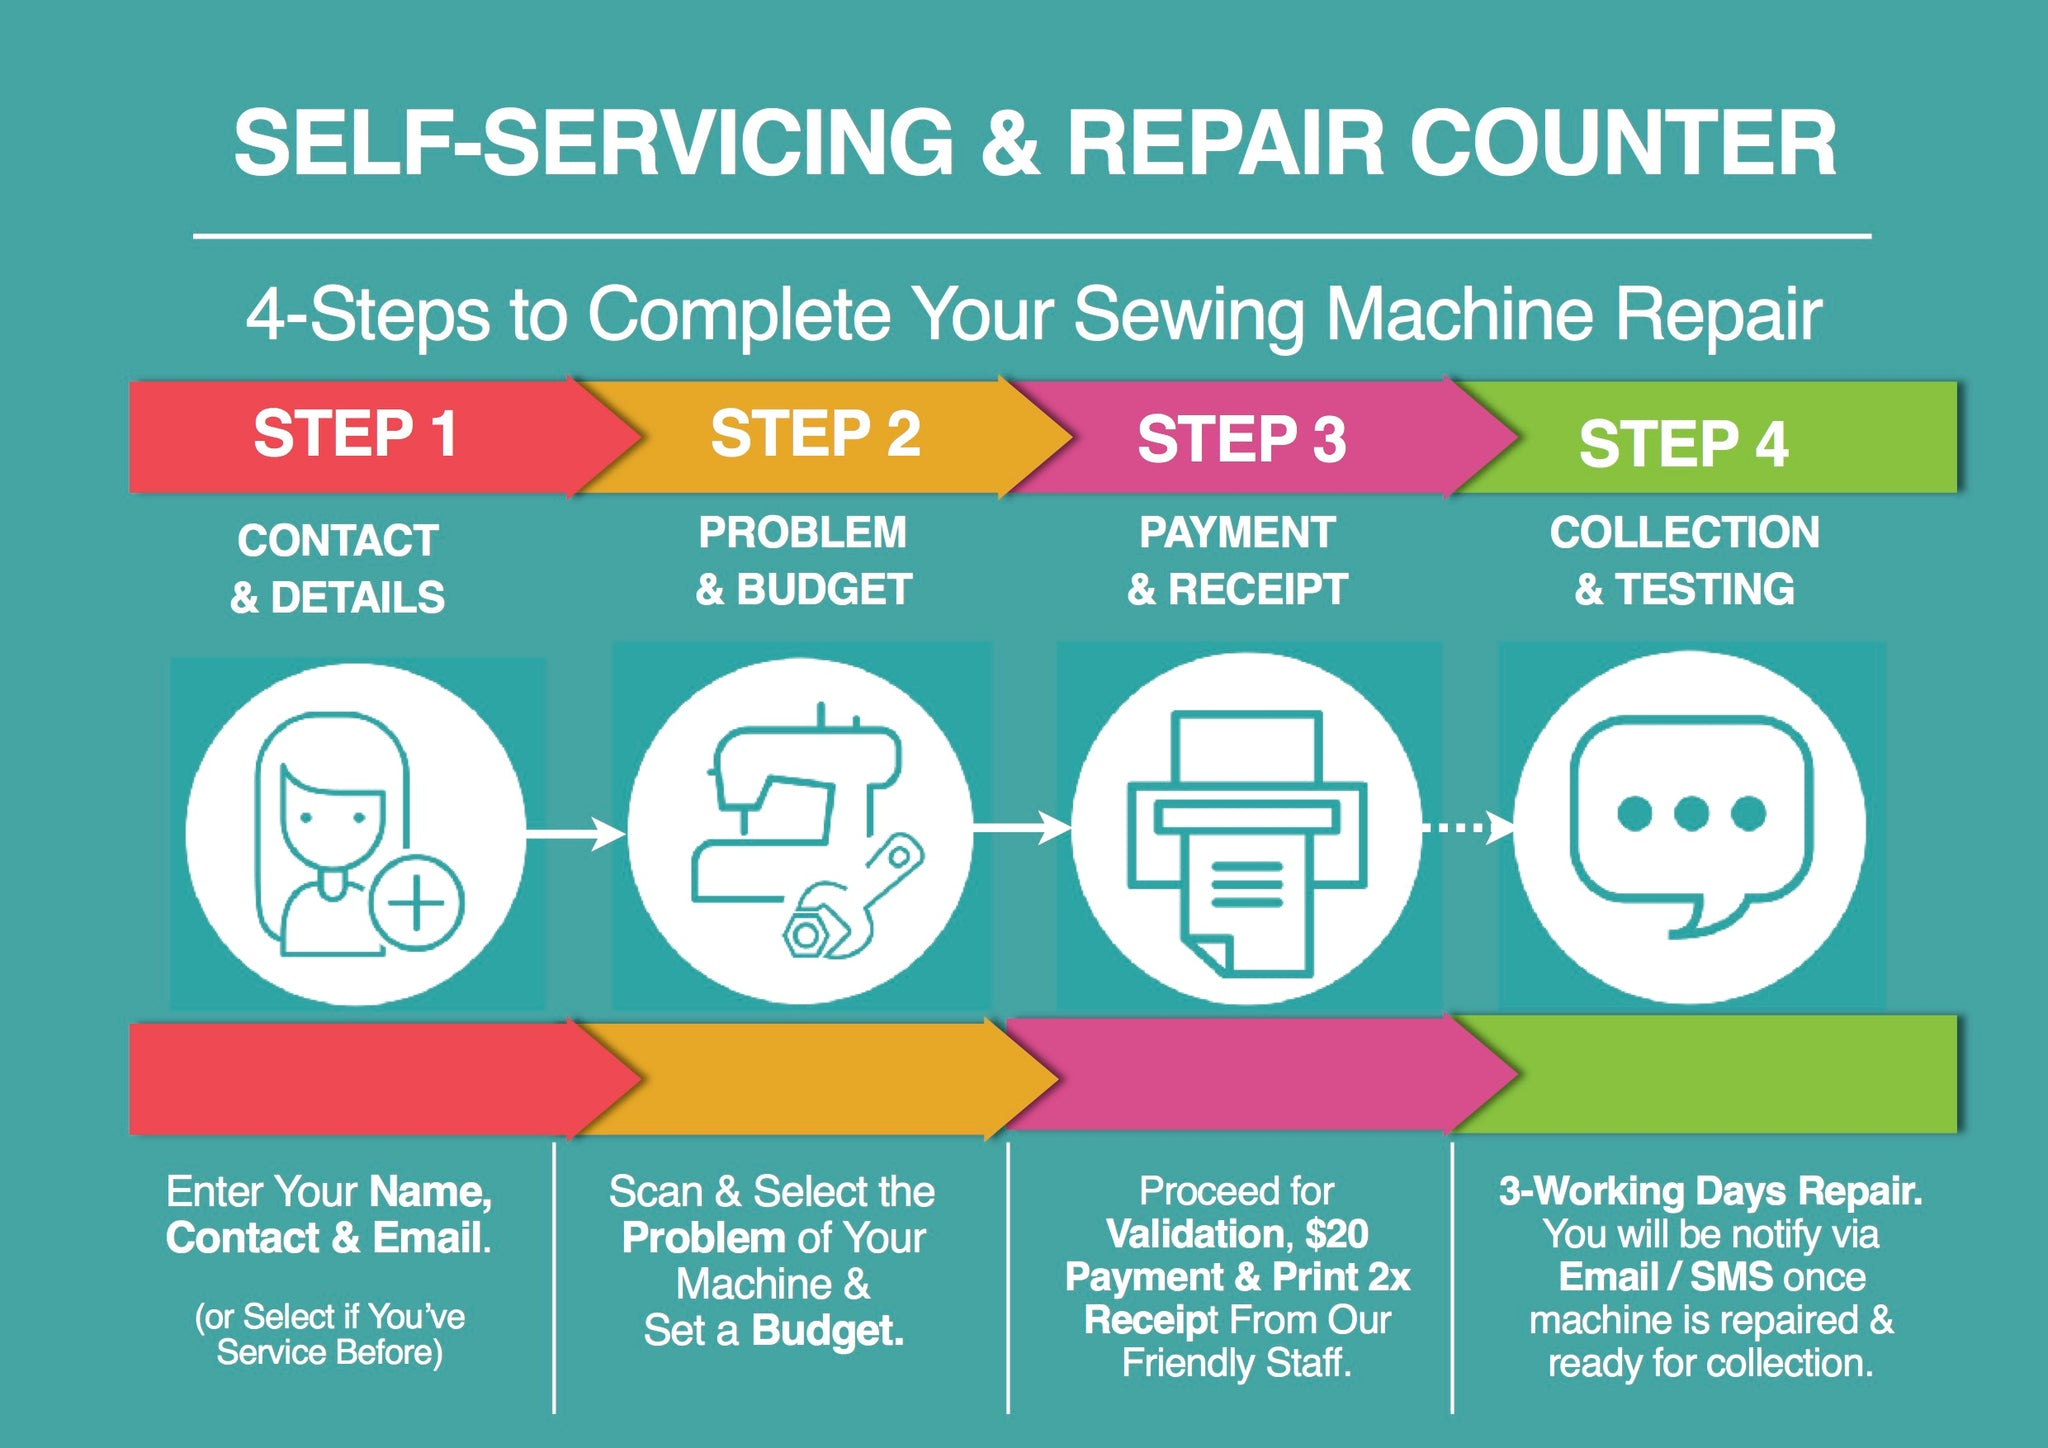 Self-Service Page - SewingGuru.com by Ban Soon